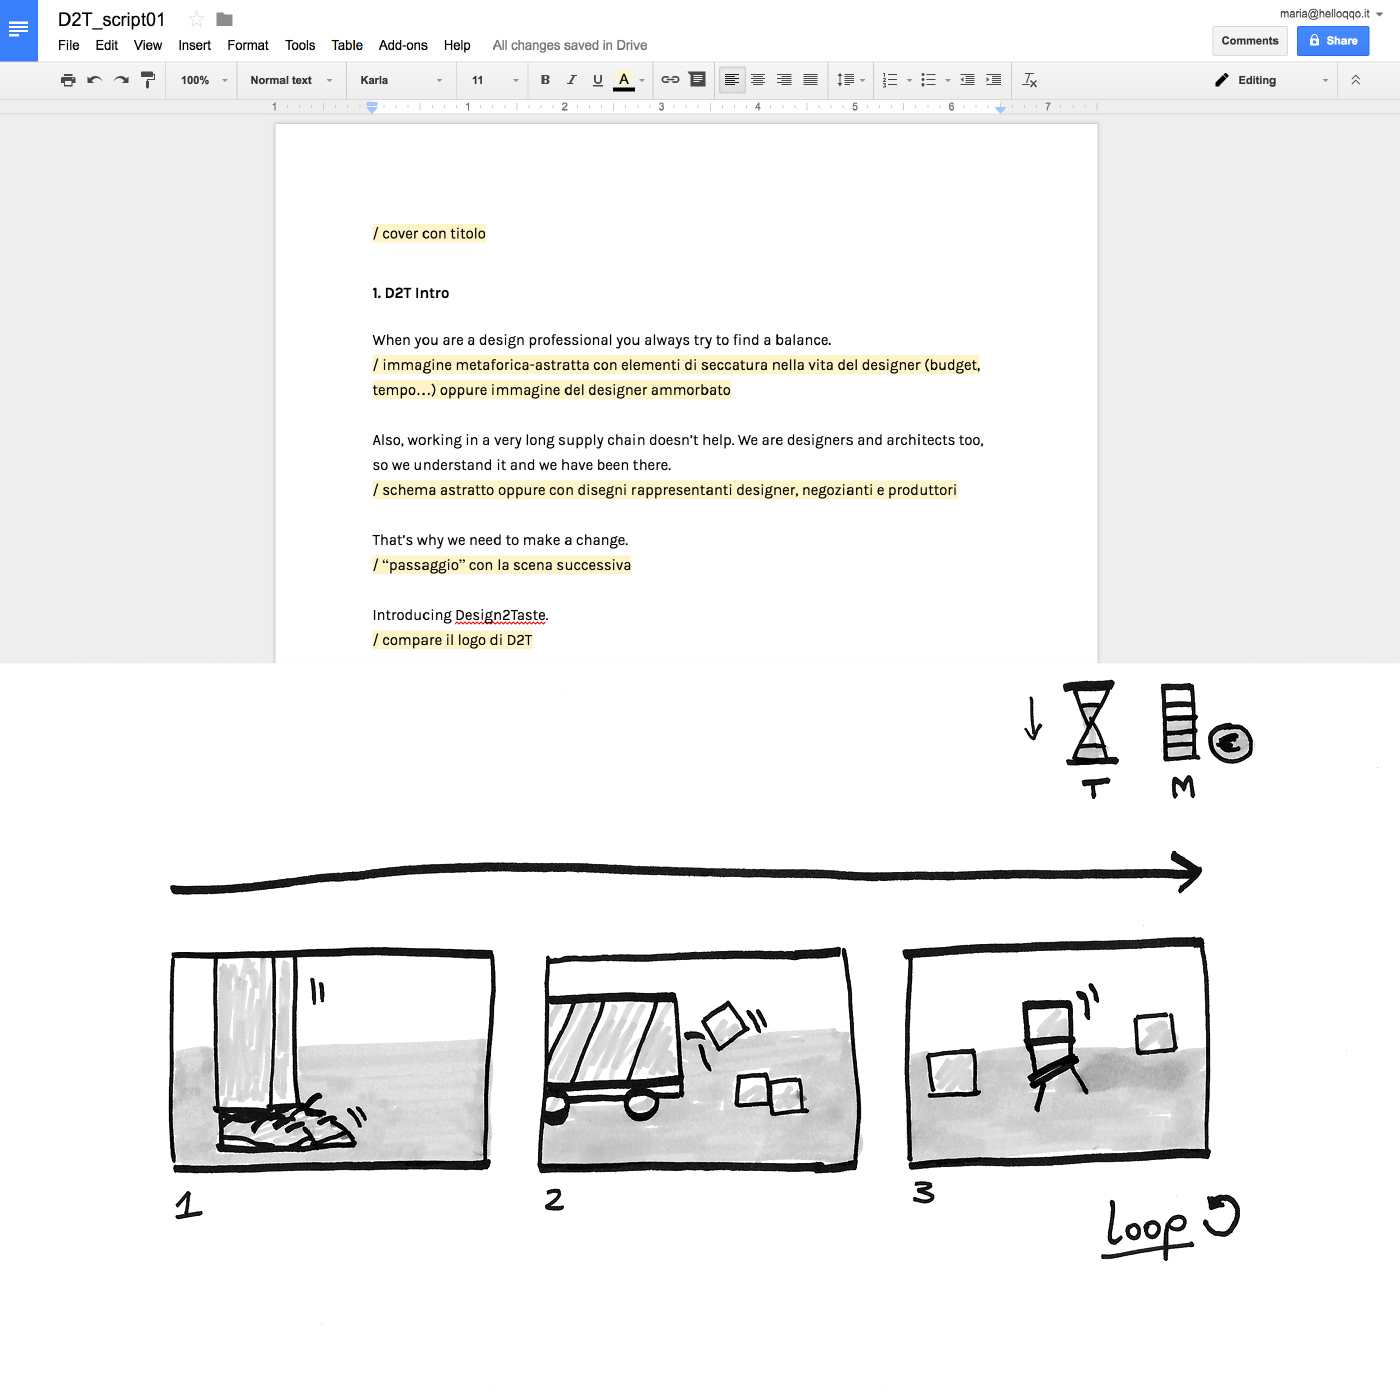 D2T Script and Storyboard